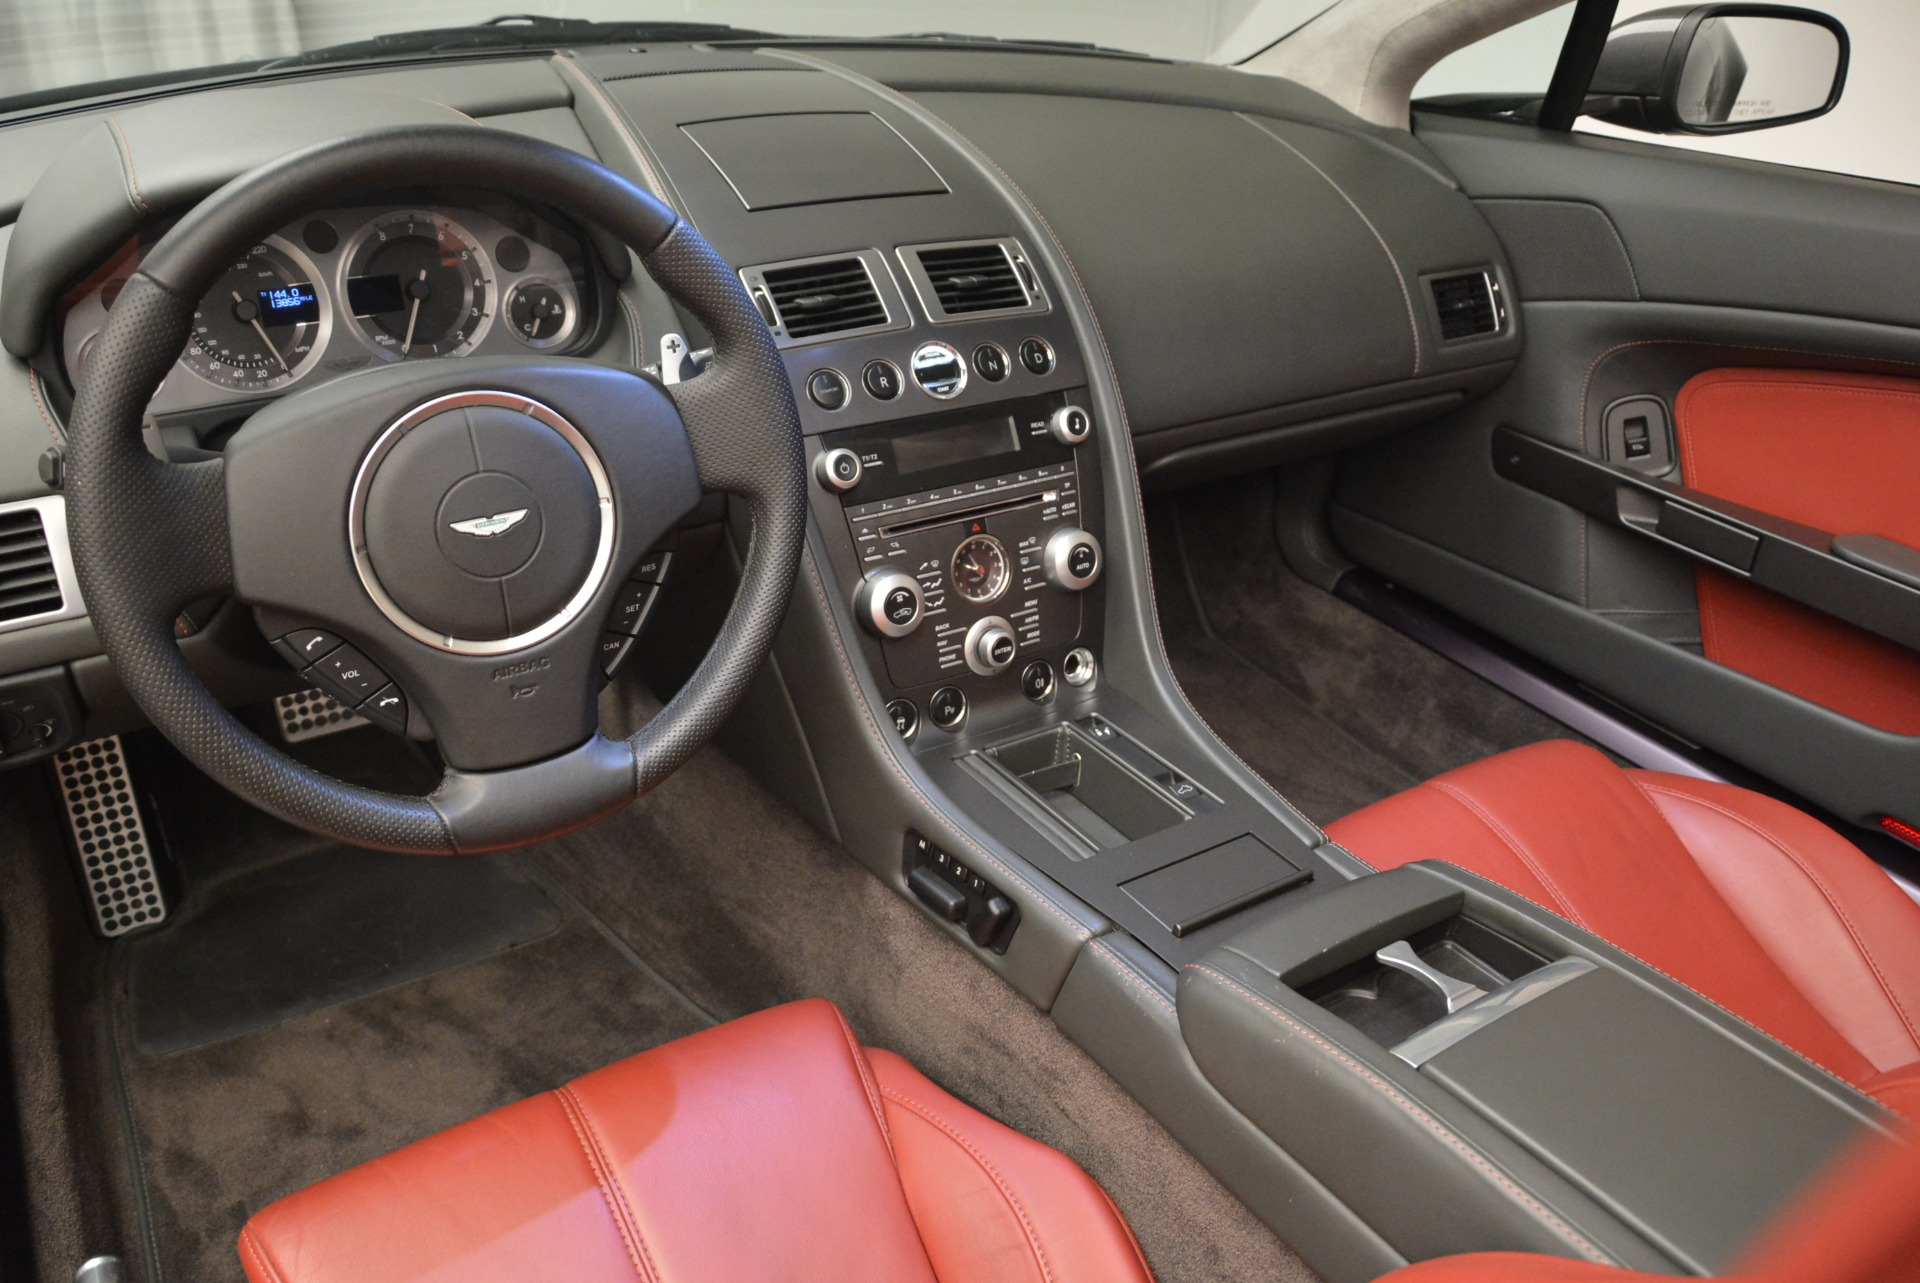 Used 2009 Aston Martin V8 Vantage Roadster For Sale In Westport, CT 2123_p26